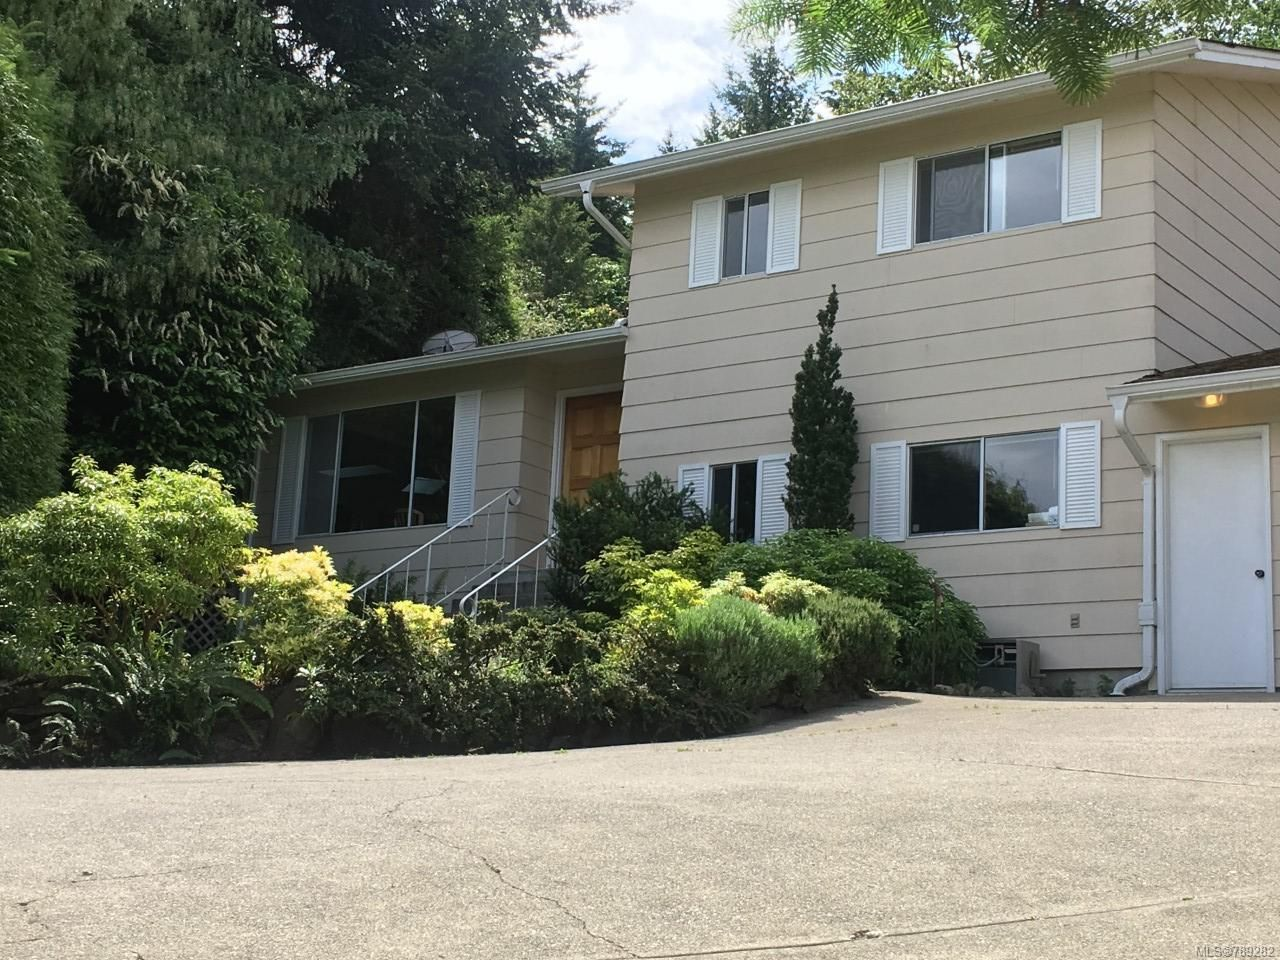 Main Photo: 3264 Blueback Dr in NANOOSE BAY: PQ Nanoose House for sale (Parksville/Qualicum)  : MLS®# 789282